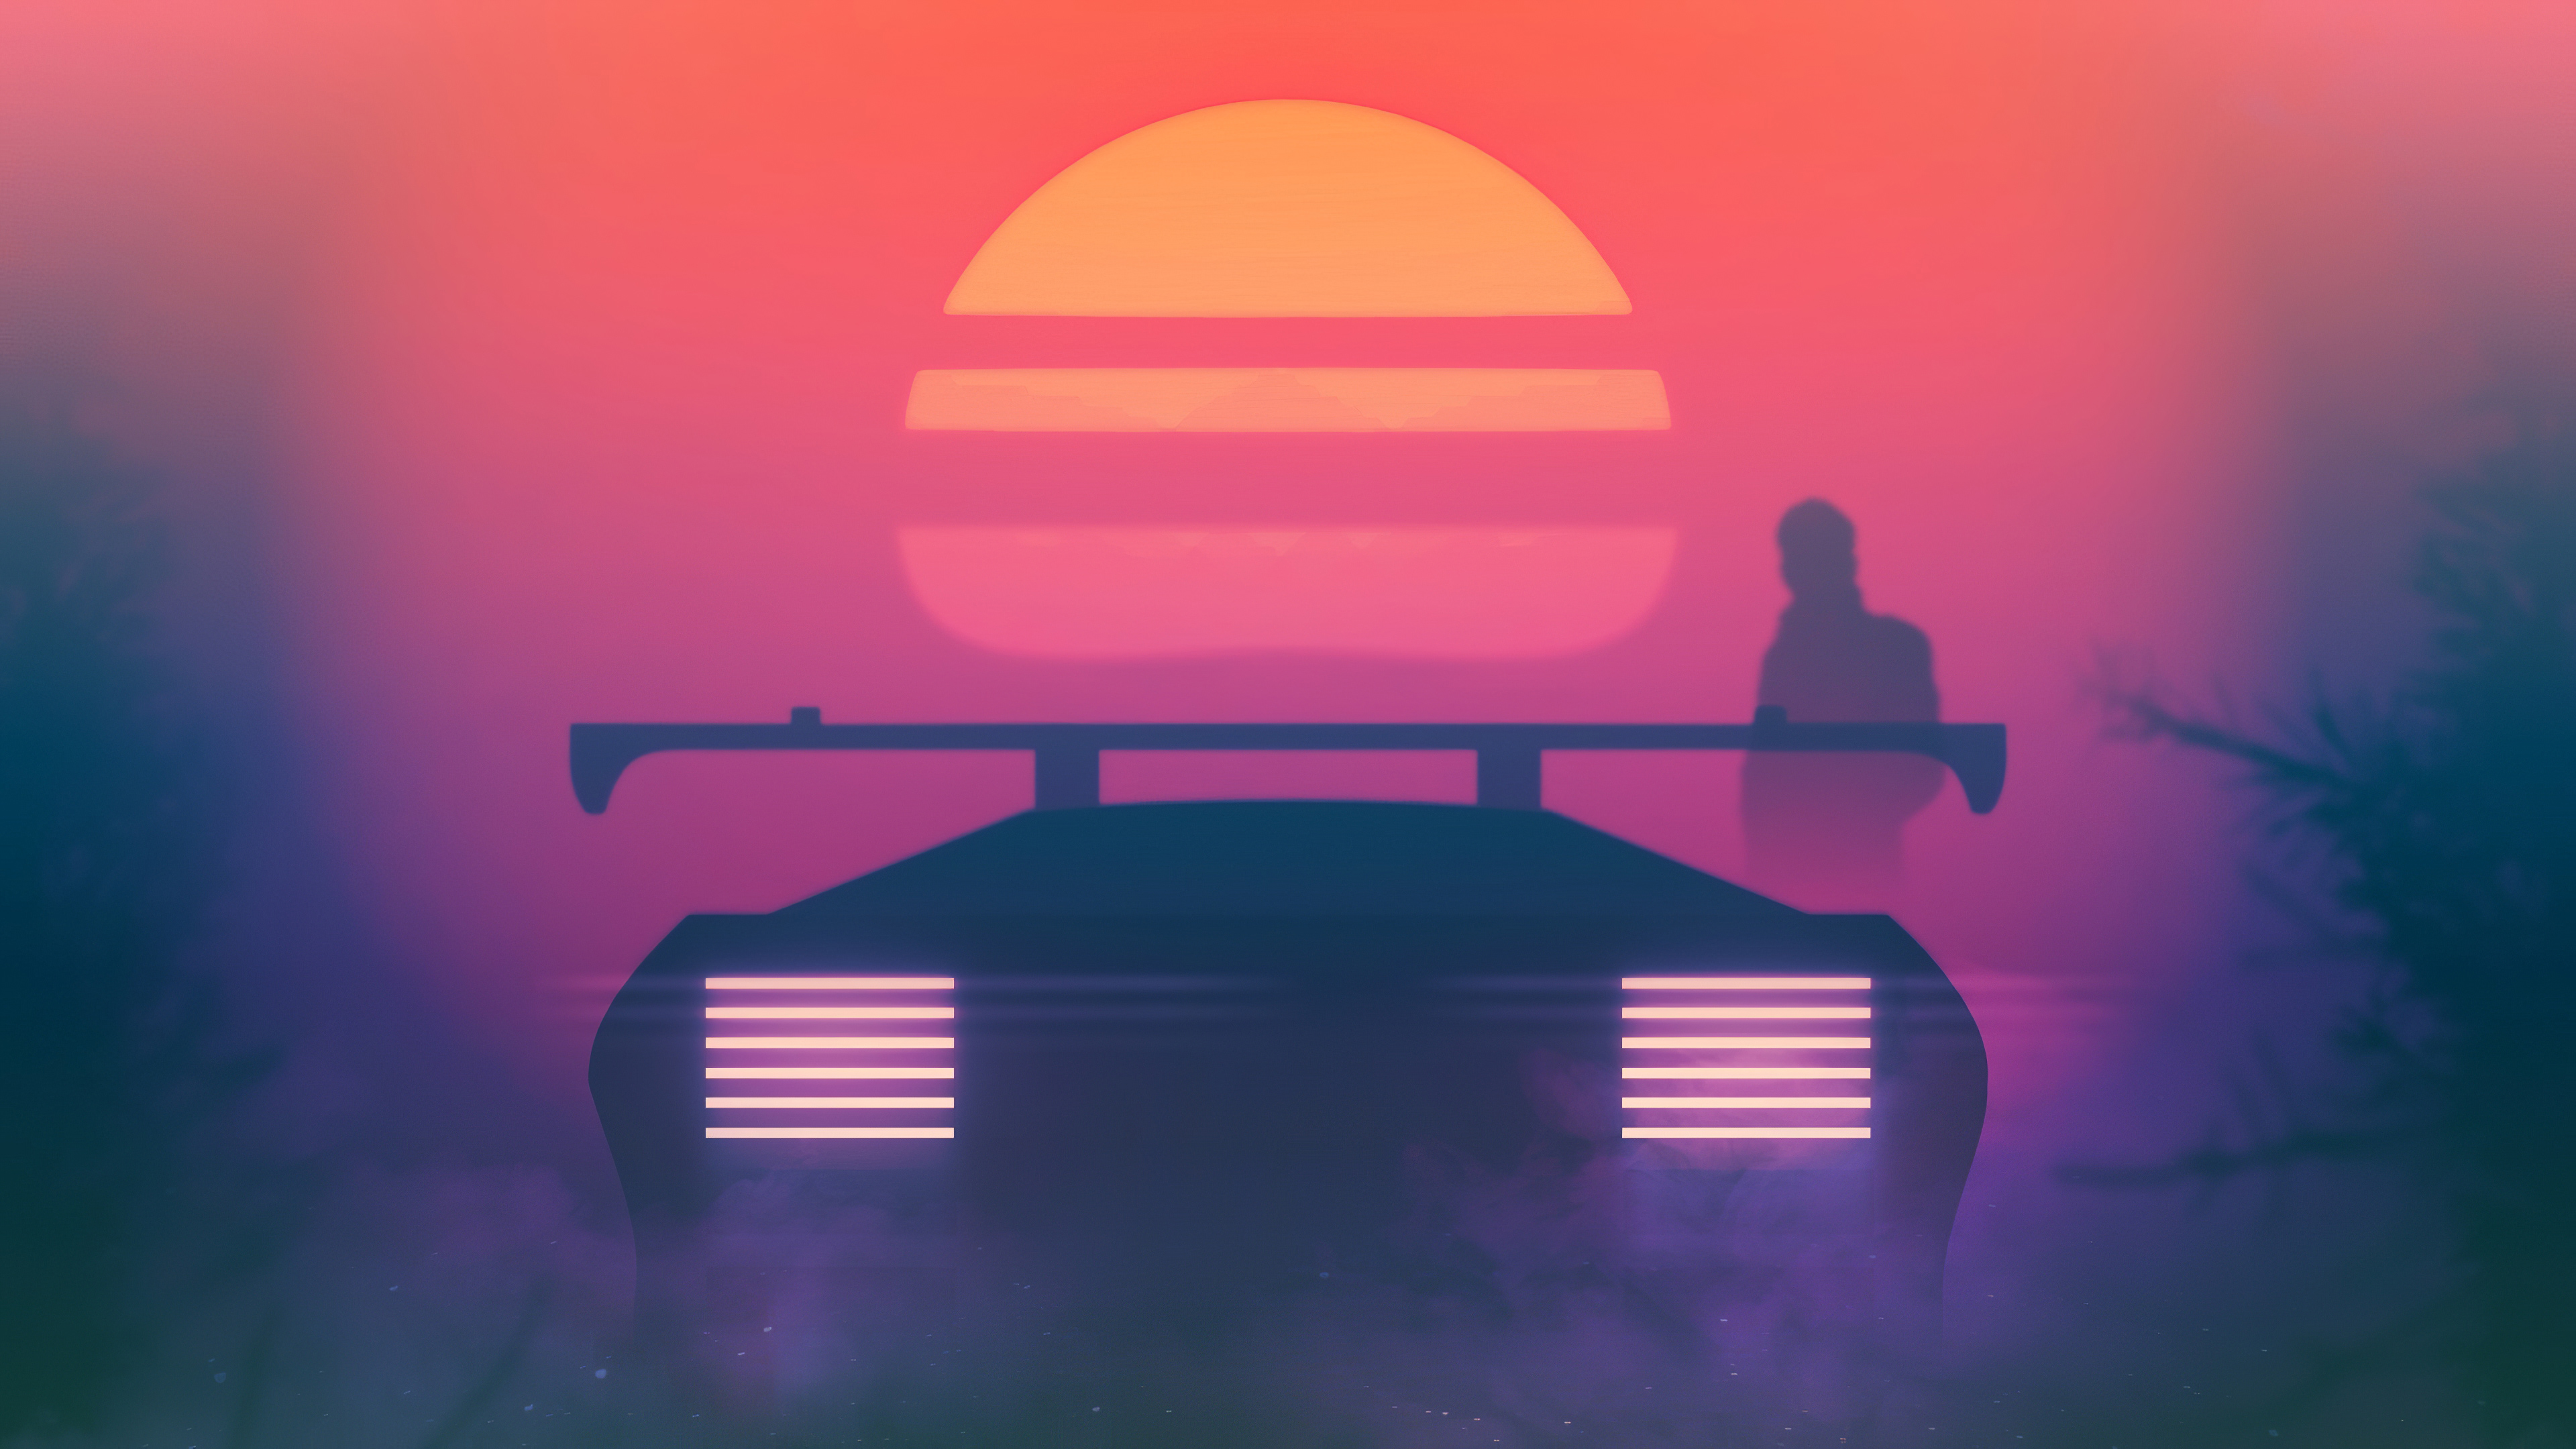 Retrowave Synthwave Evening Ride 4k Hd Artist 4k Wallpapers Images Backgrounds Photos And Pictures